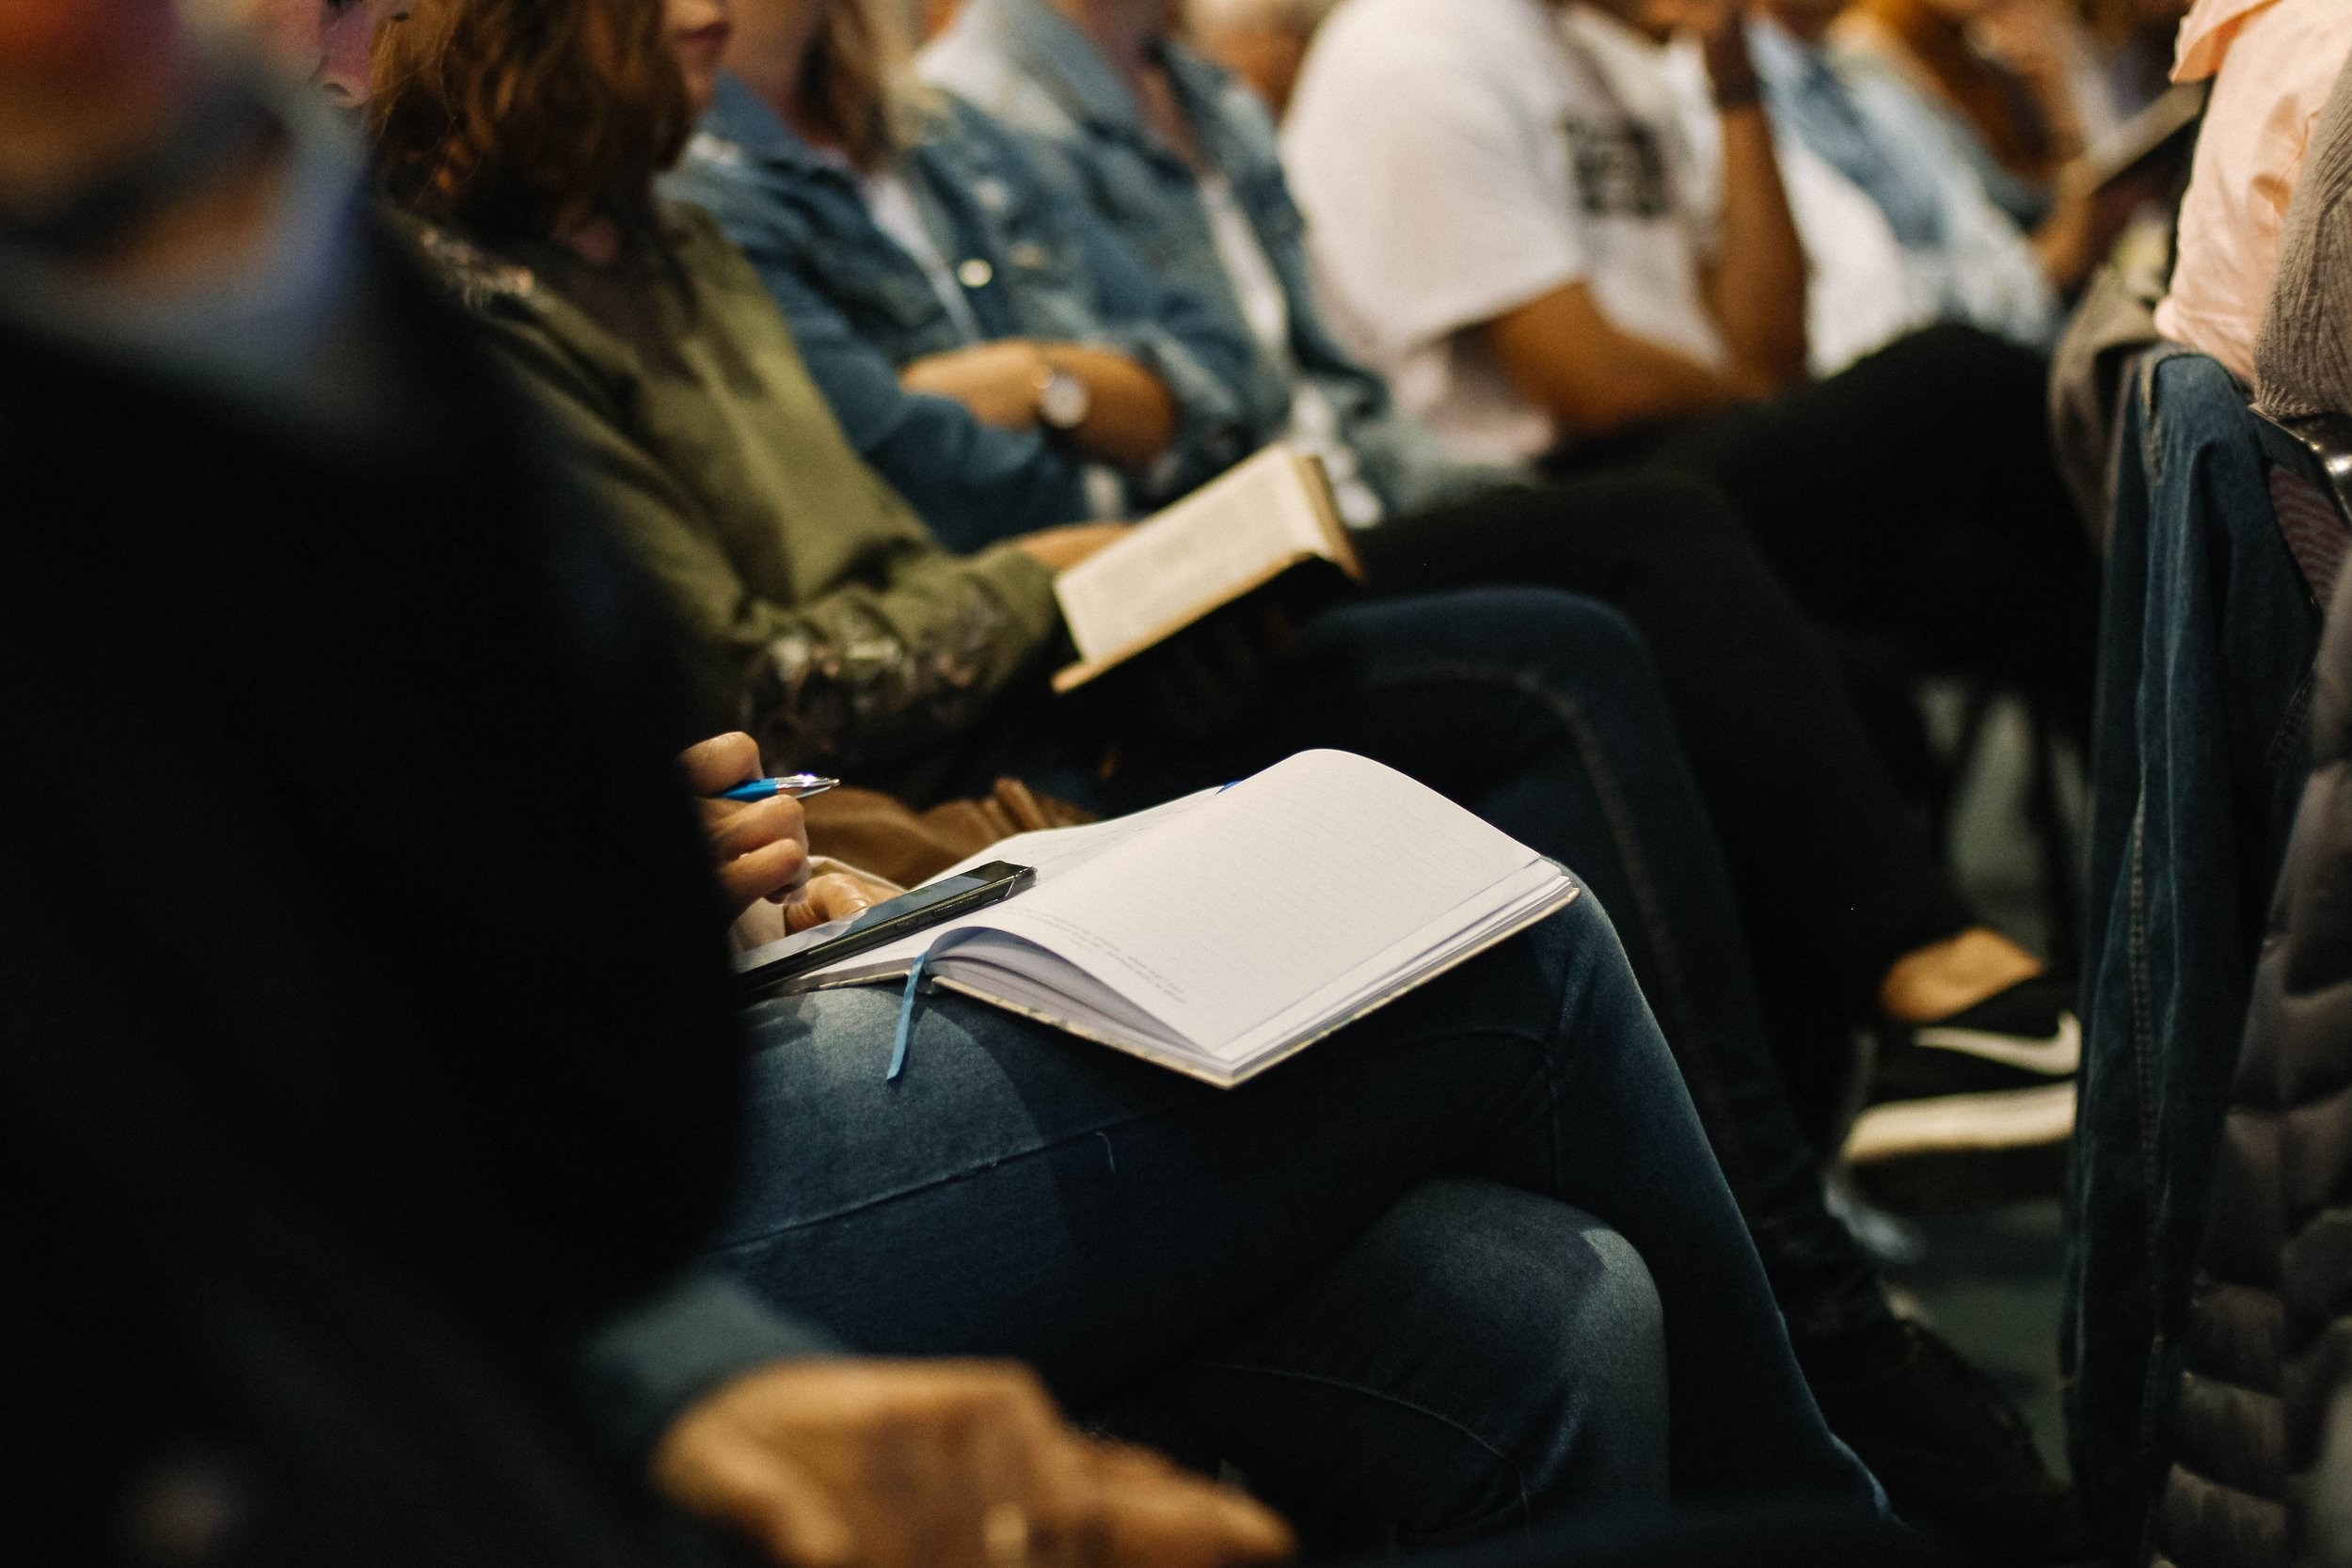 Evidence-Based Mindfulness for College Students Image Depicting Students at a Lecture Taking Notes in Notebooks